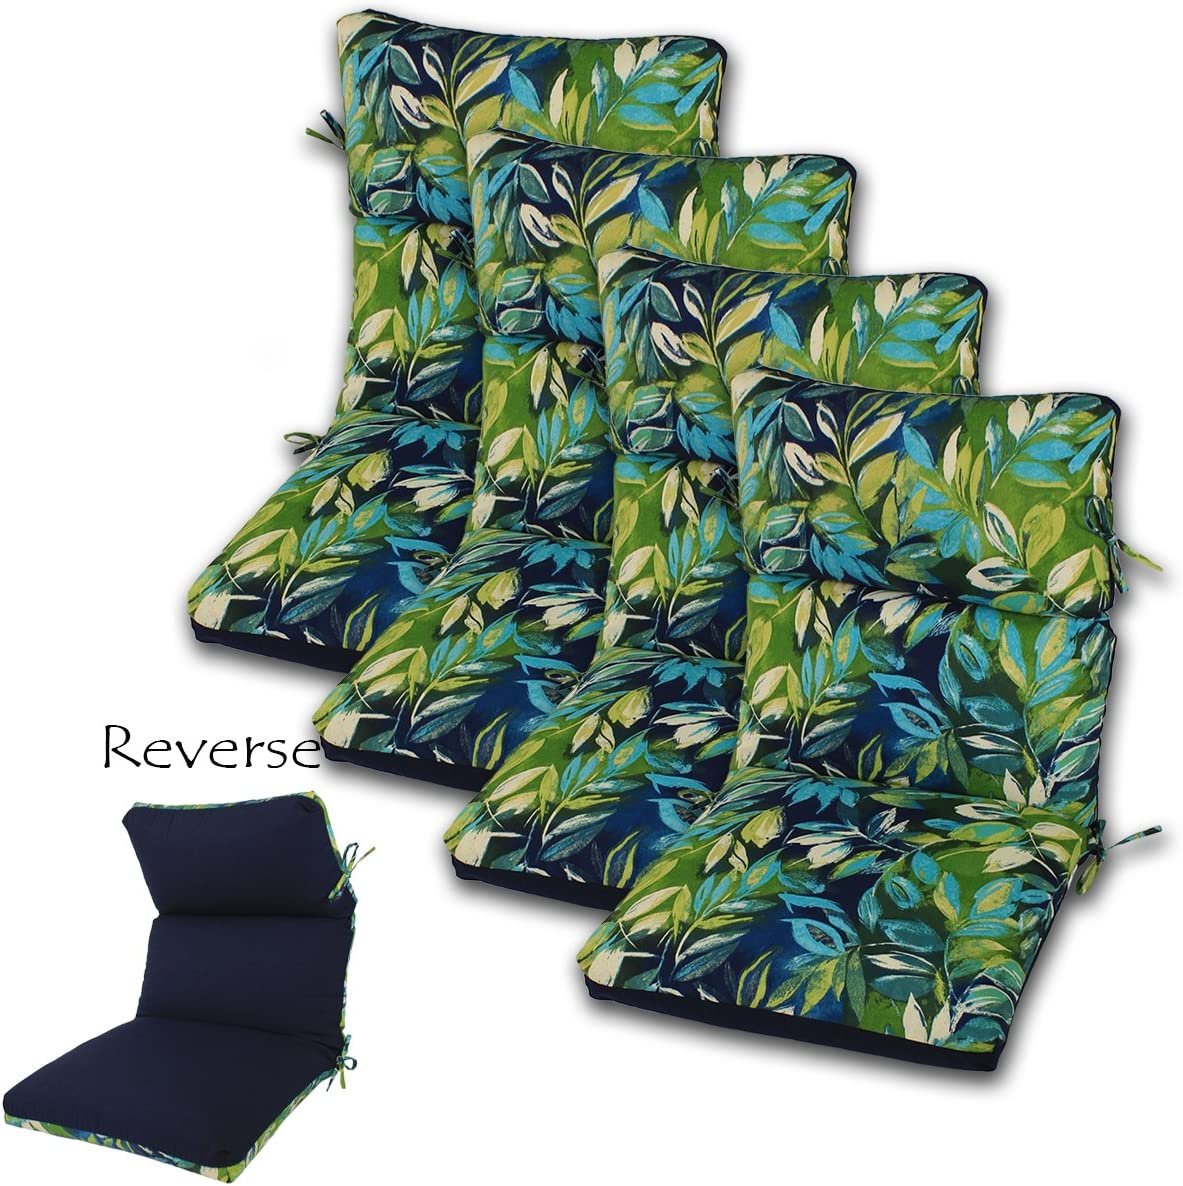 Comfort Classics Inc. Set of 4 22W x 44L x 5H Hinge at 24 Spun Polyester Outdoor CHANNELED Reversible Chair Cushion in Seabreeze Lagoon-Solid Navy